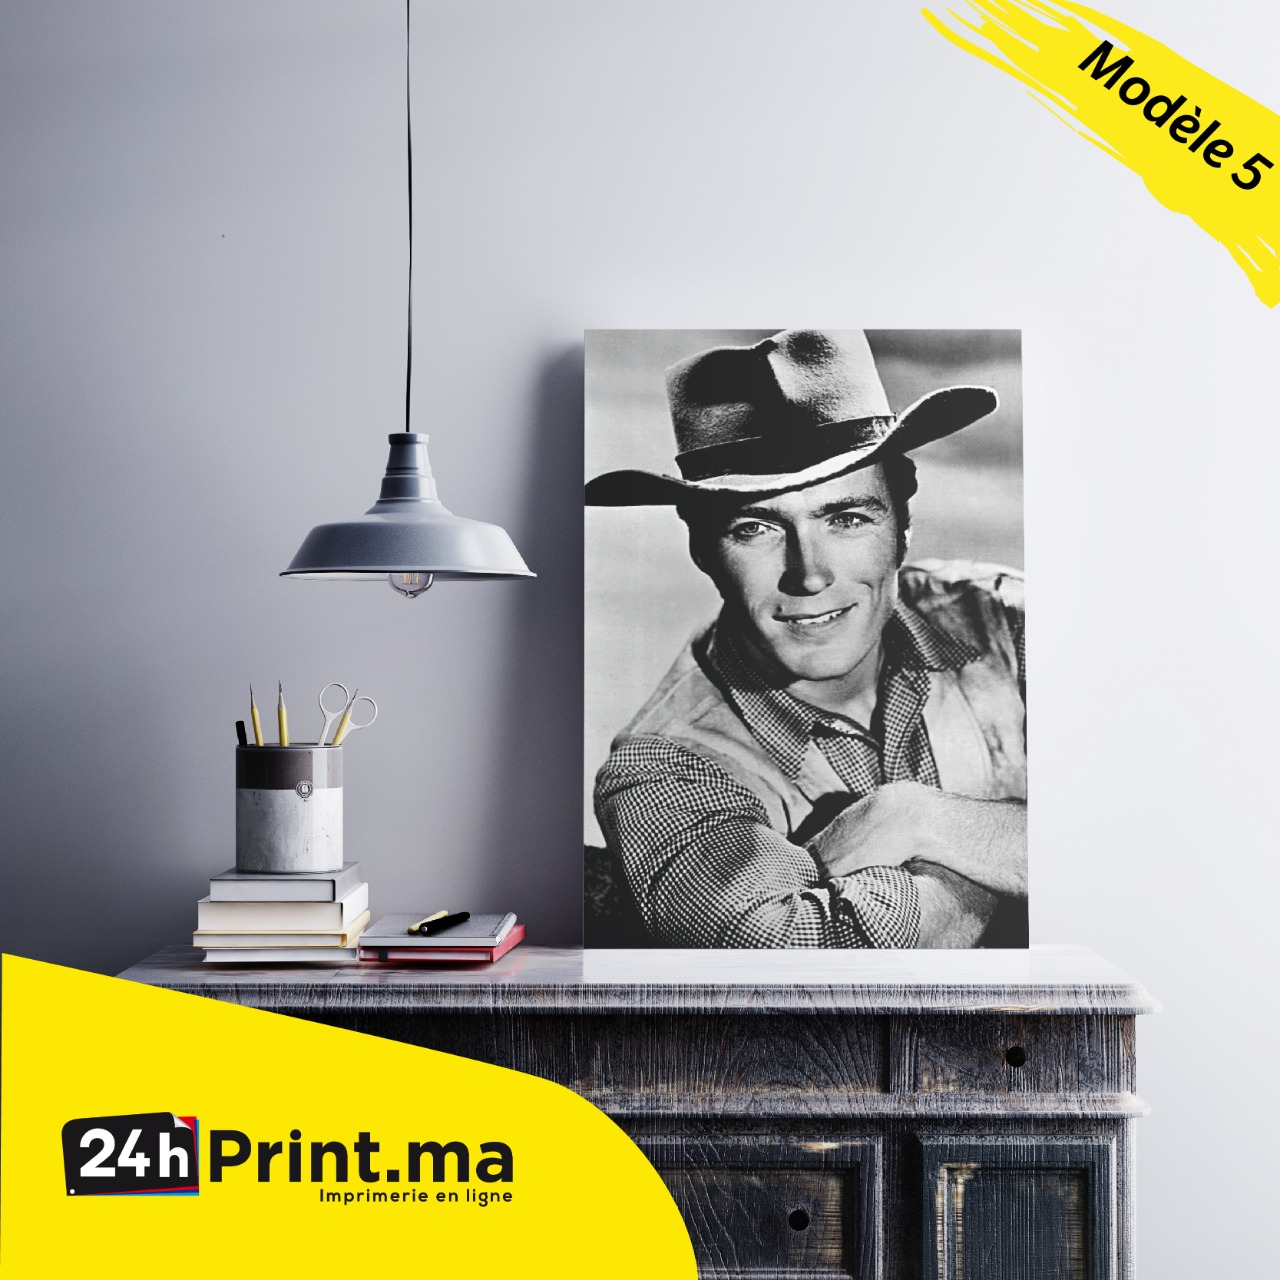 https://www.24hprint.ma/images/products_gallery_images/550.jpeg